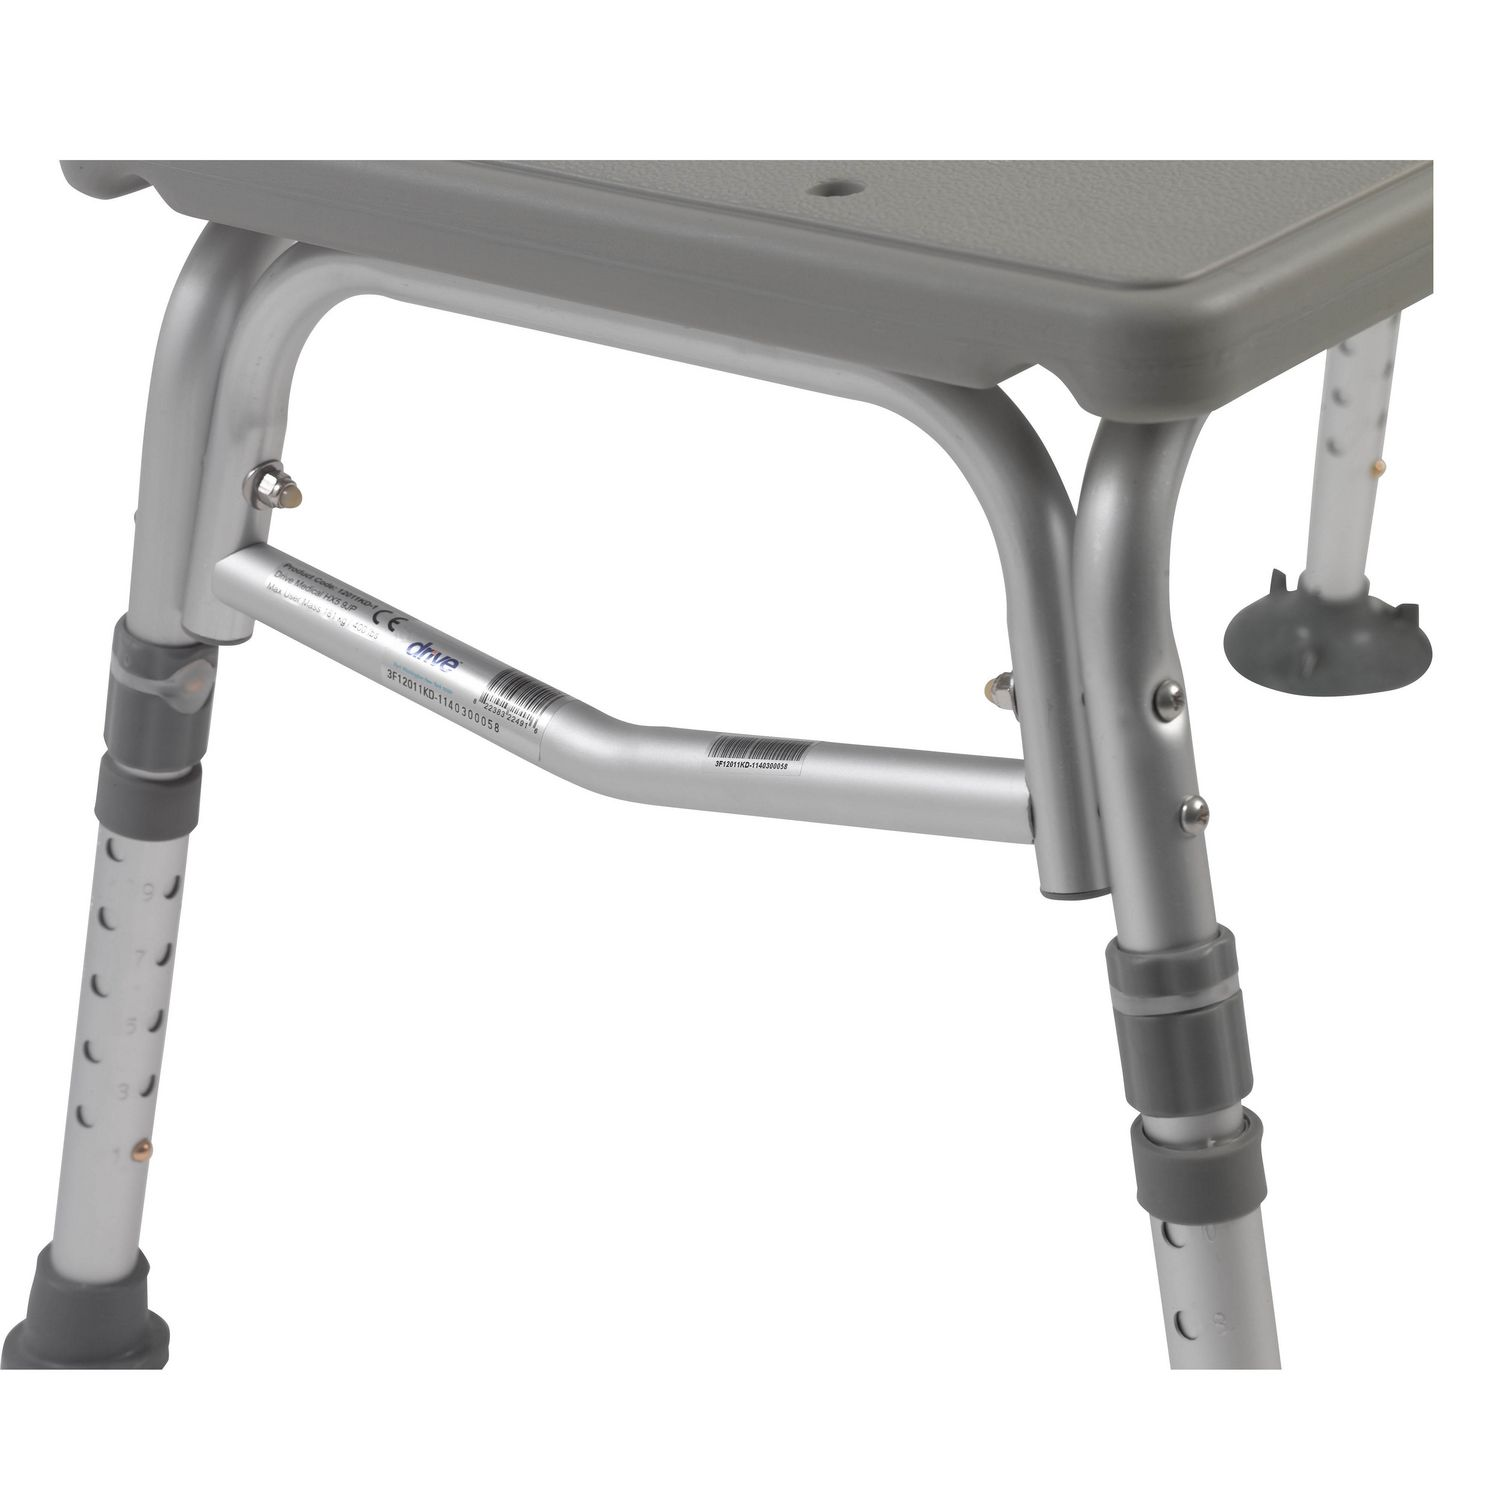 Transfer Tub Bench | Medical Transfer Bench | Tub Transfer Bench Images